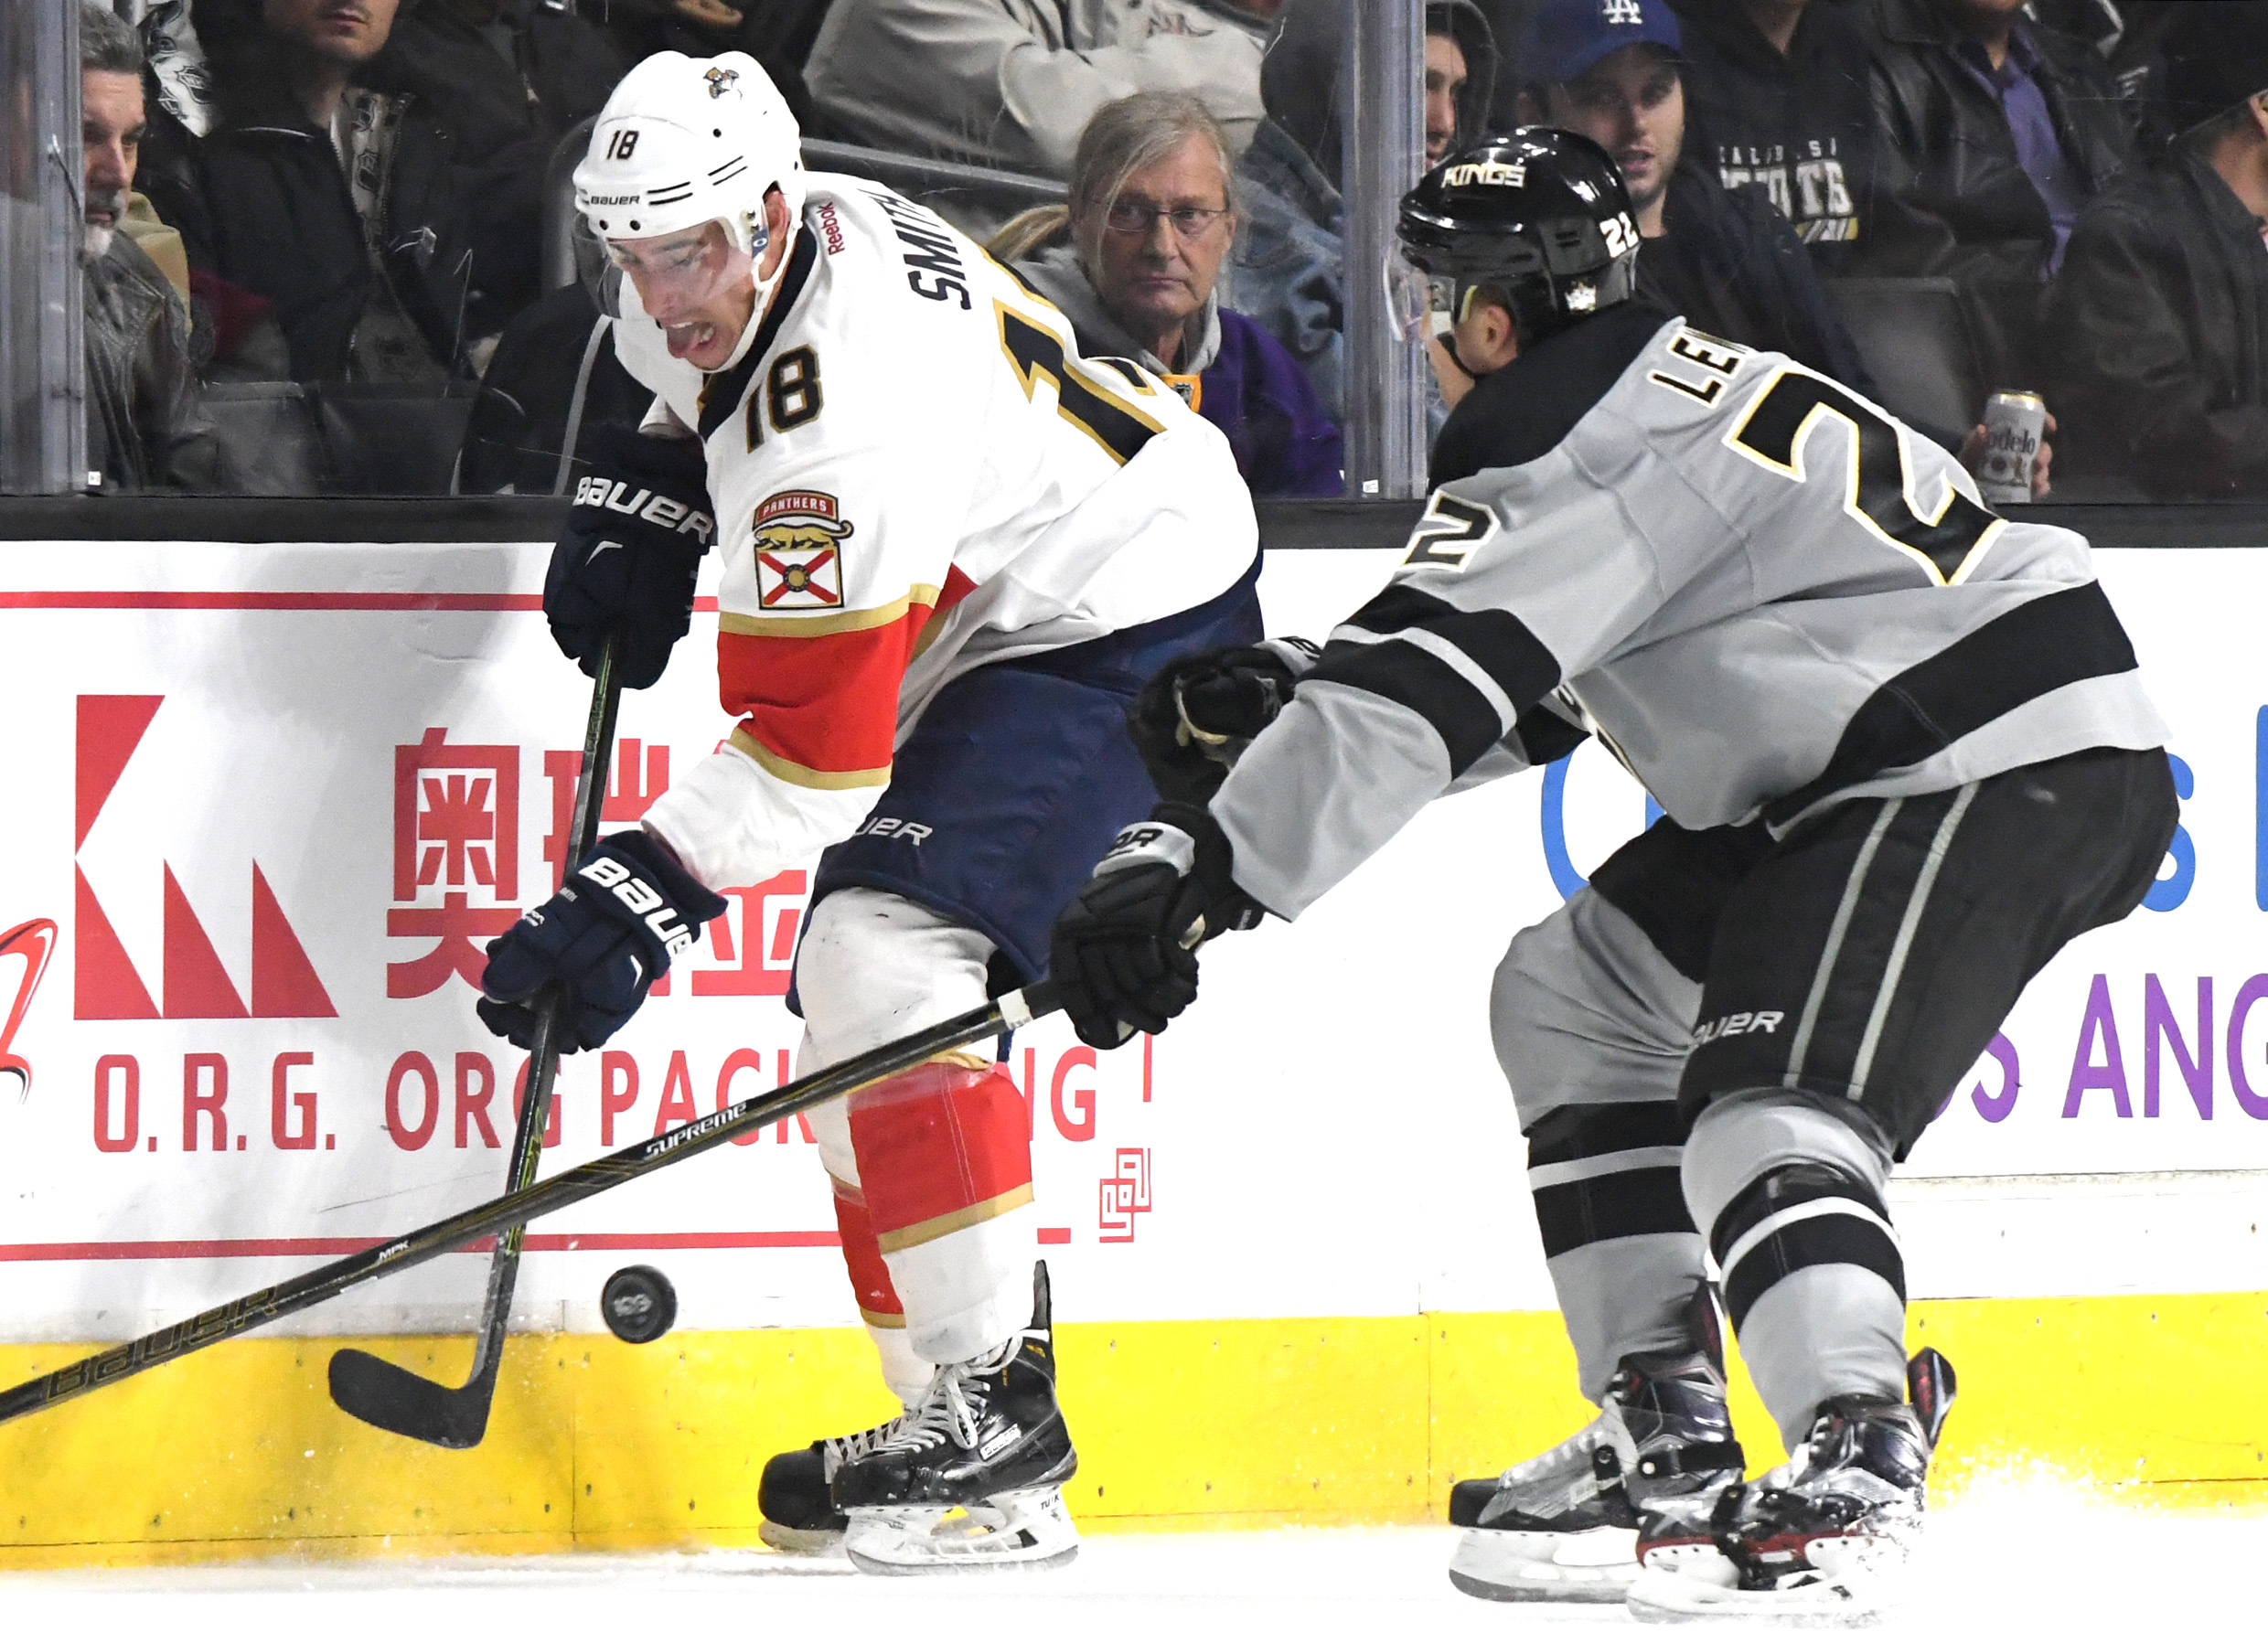 9886933-nhl-florida-panthers-at-los-angeles-kings